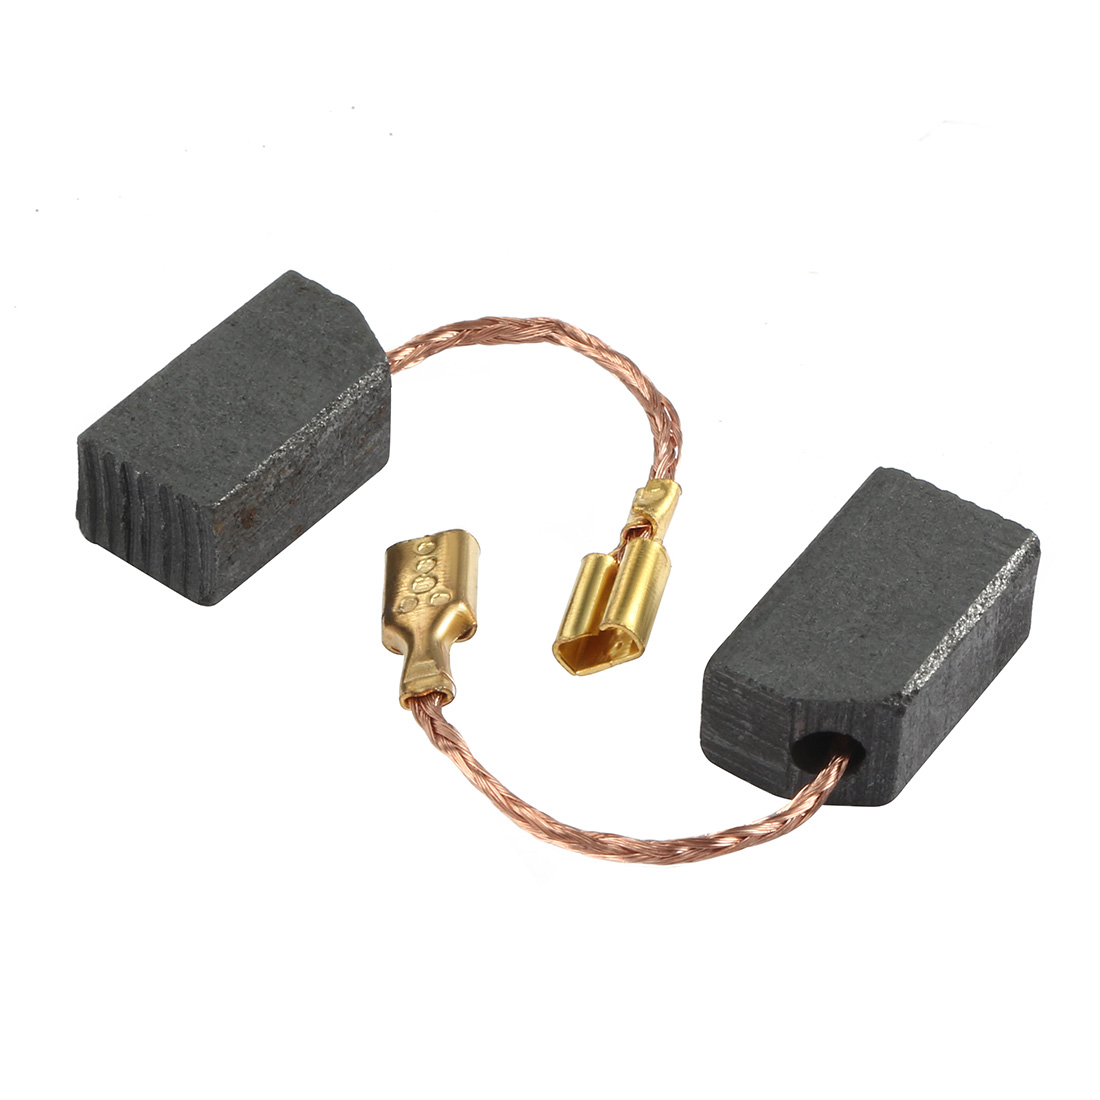 Pair Carbon Motor Brushes Spare Part Power Tool 6mm x 8mm x 14mm